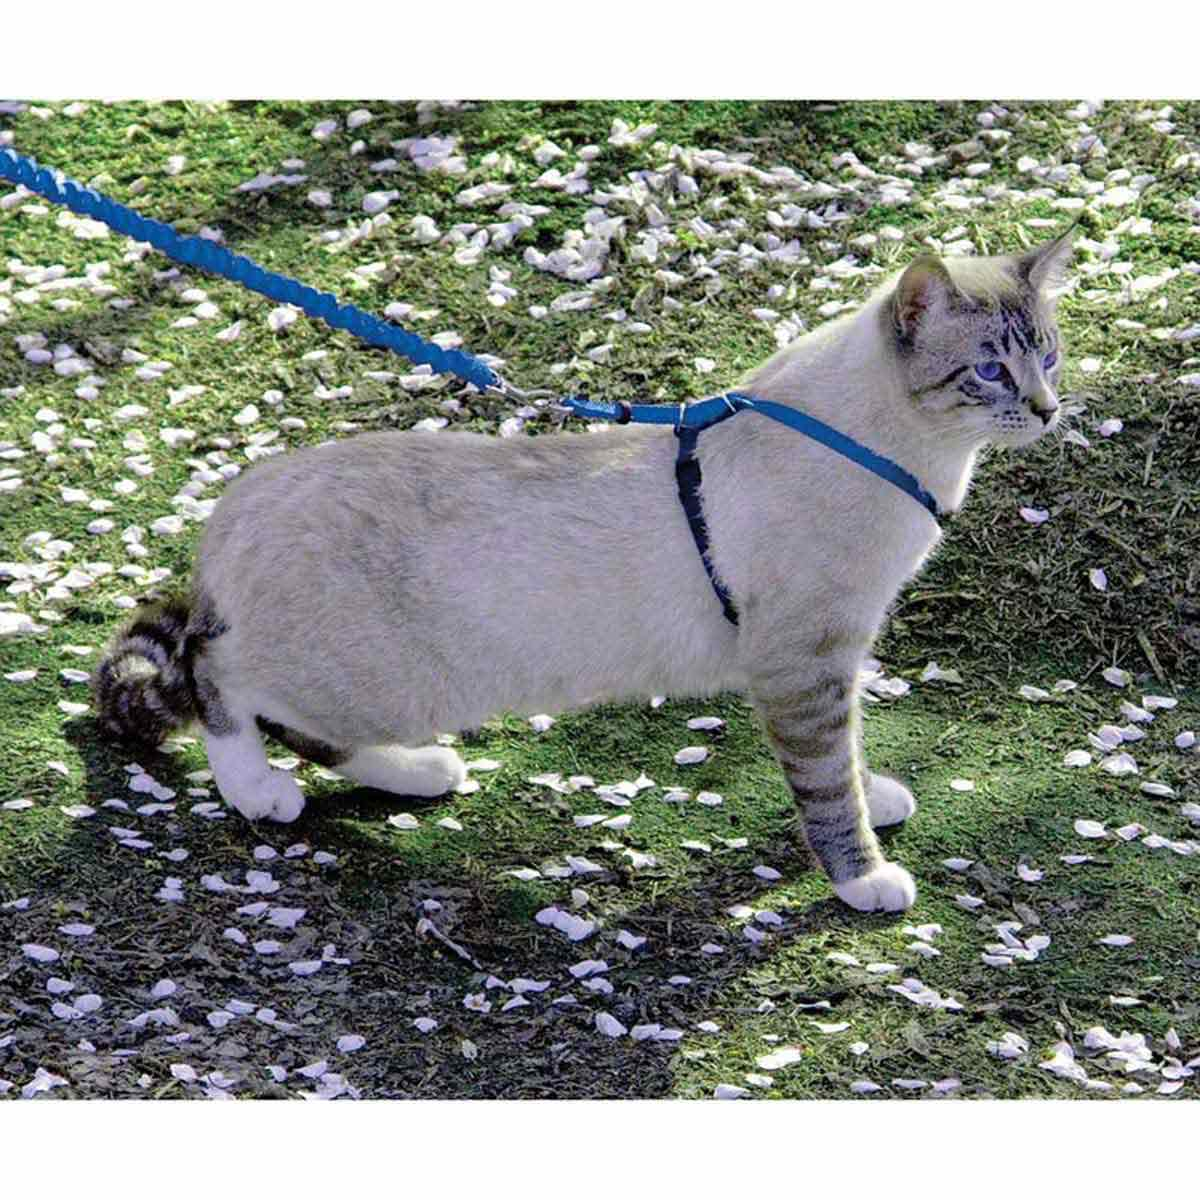 PetSafe Come With Me Kitty Harness and Bungee Leash Med Royal 10.5 inches - 14 inches